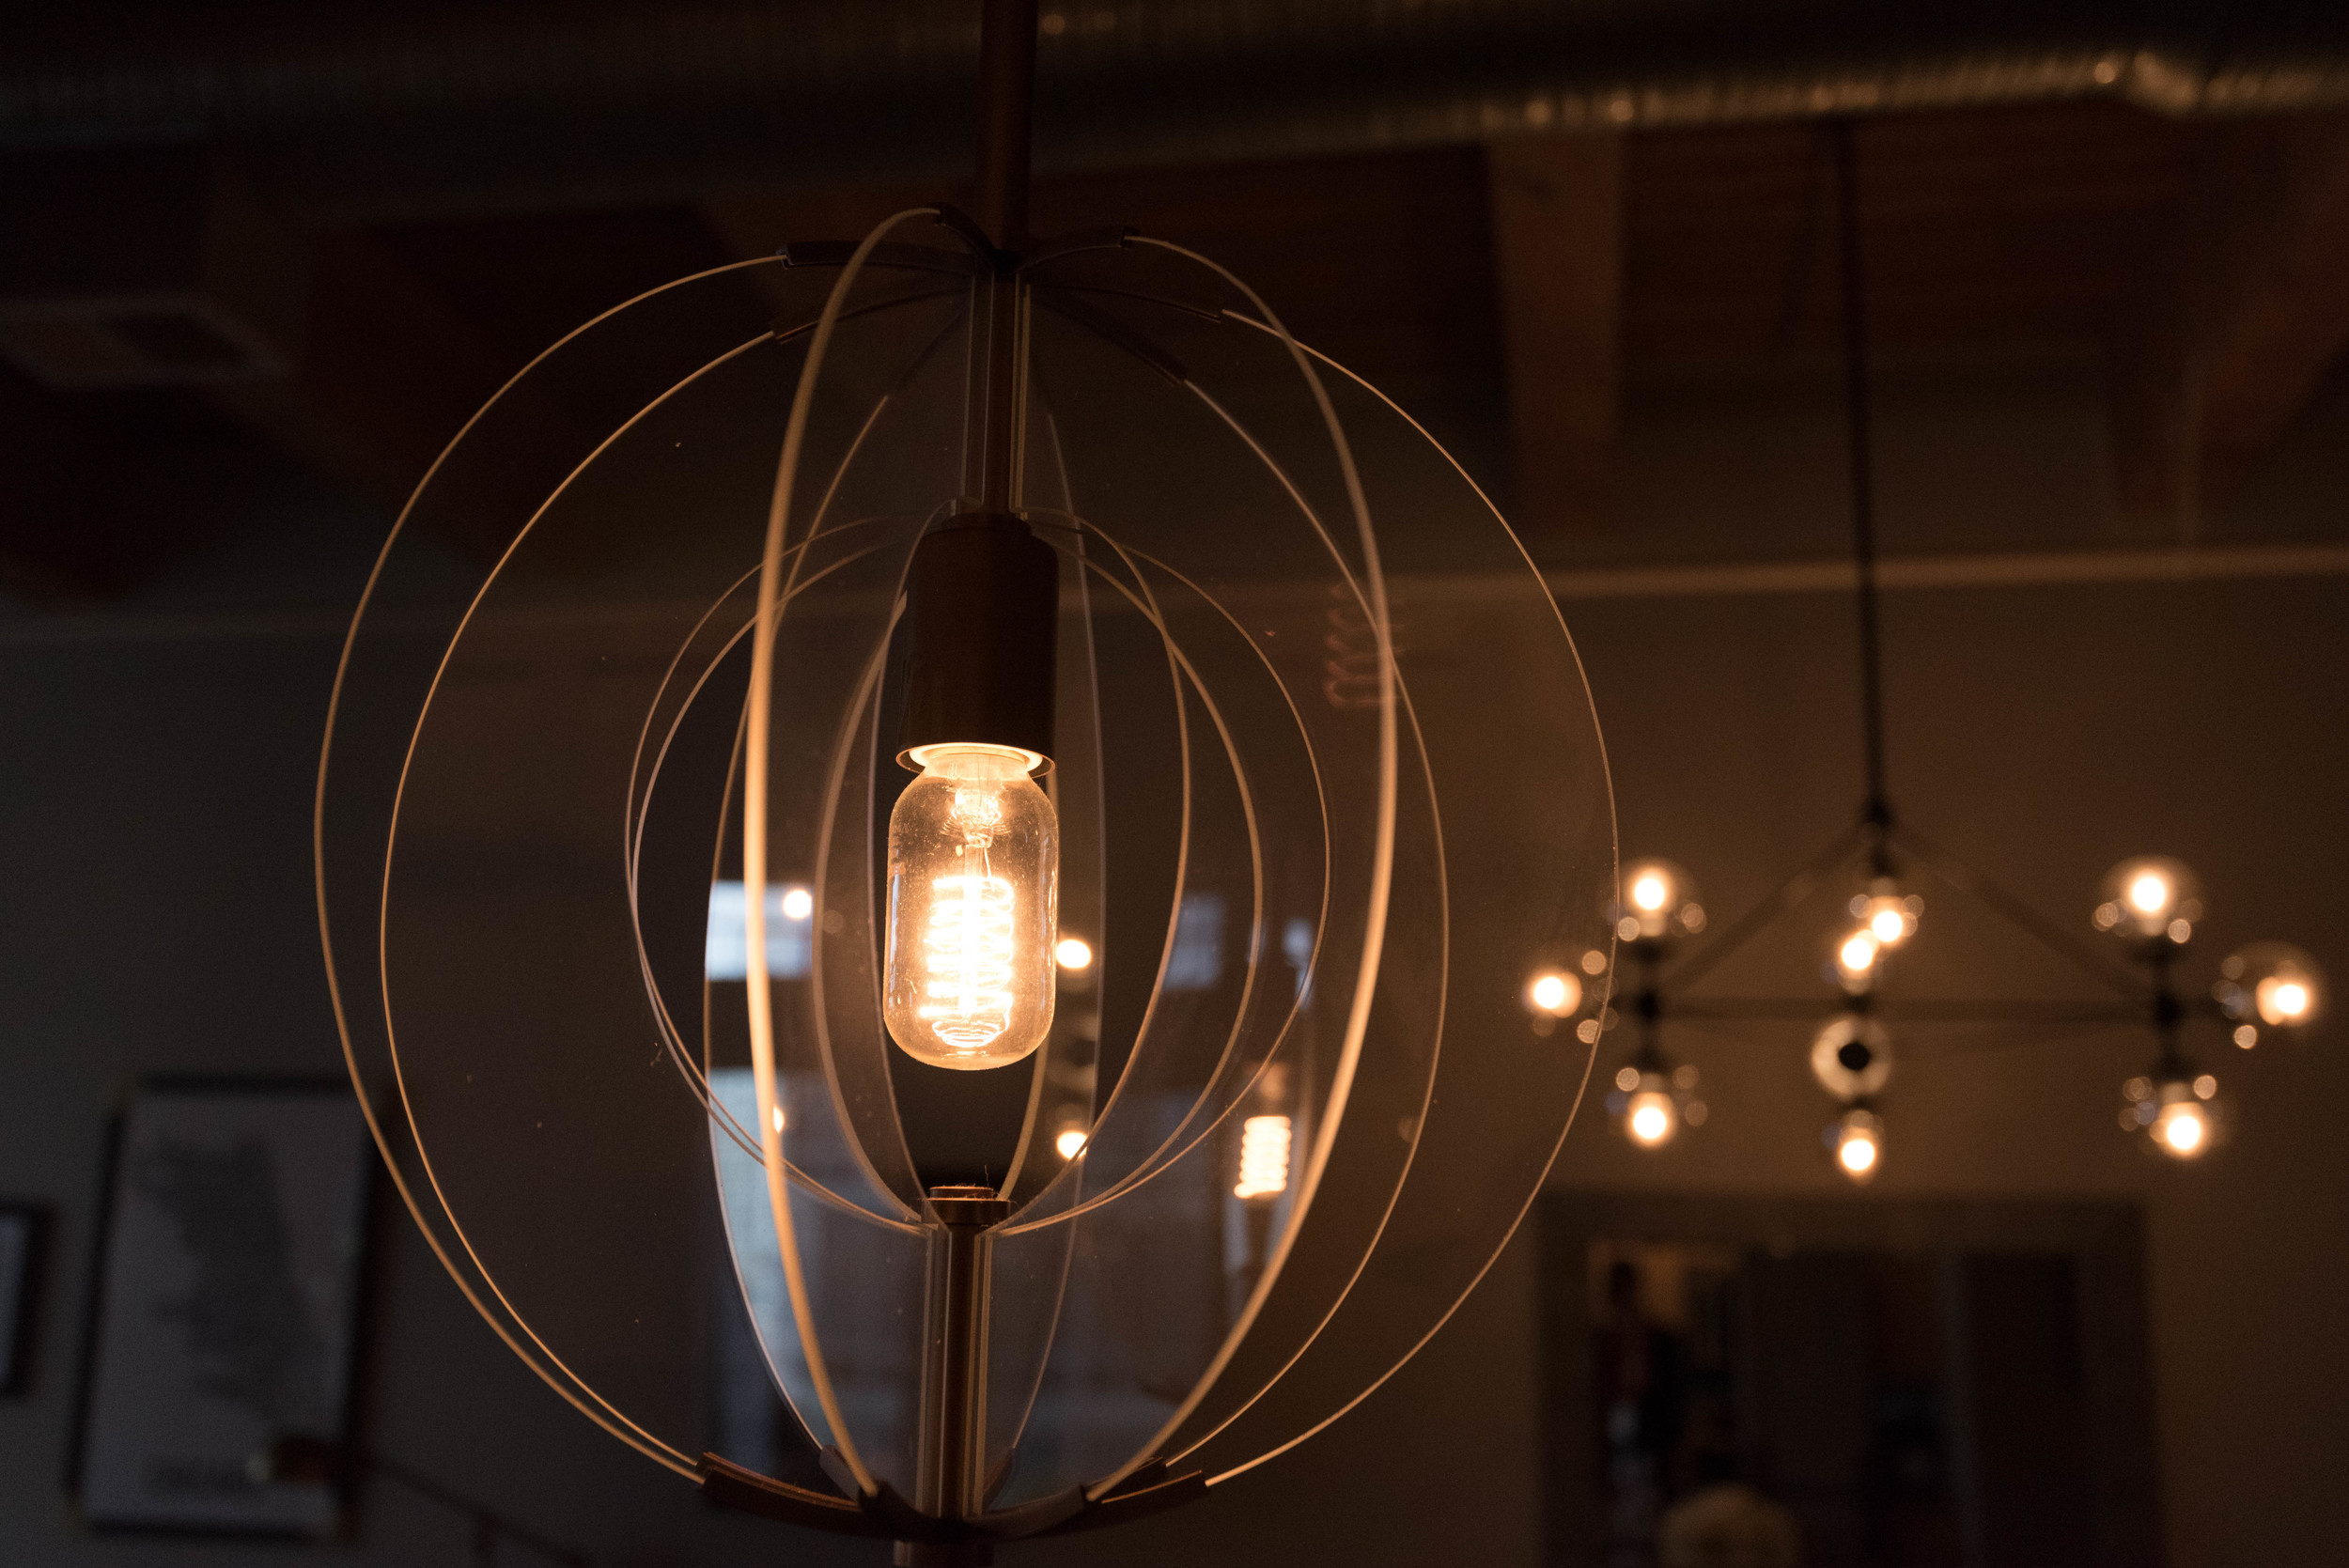 Updating their existing island pendant lights with these gorgeous brass and glass fixtures with edison bulbs add so much more interest and elegance to the space.